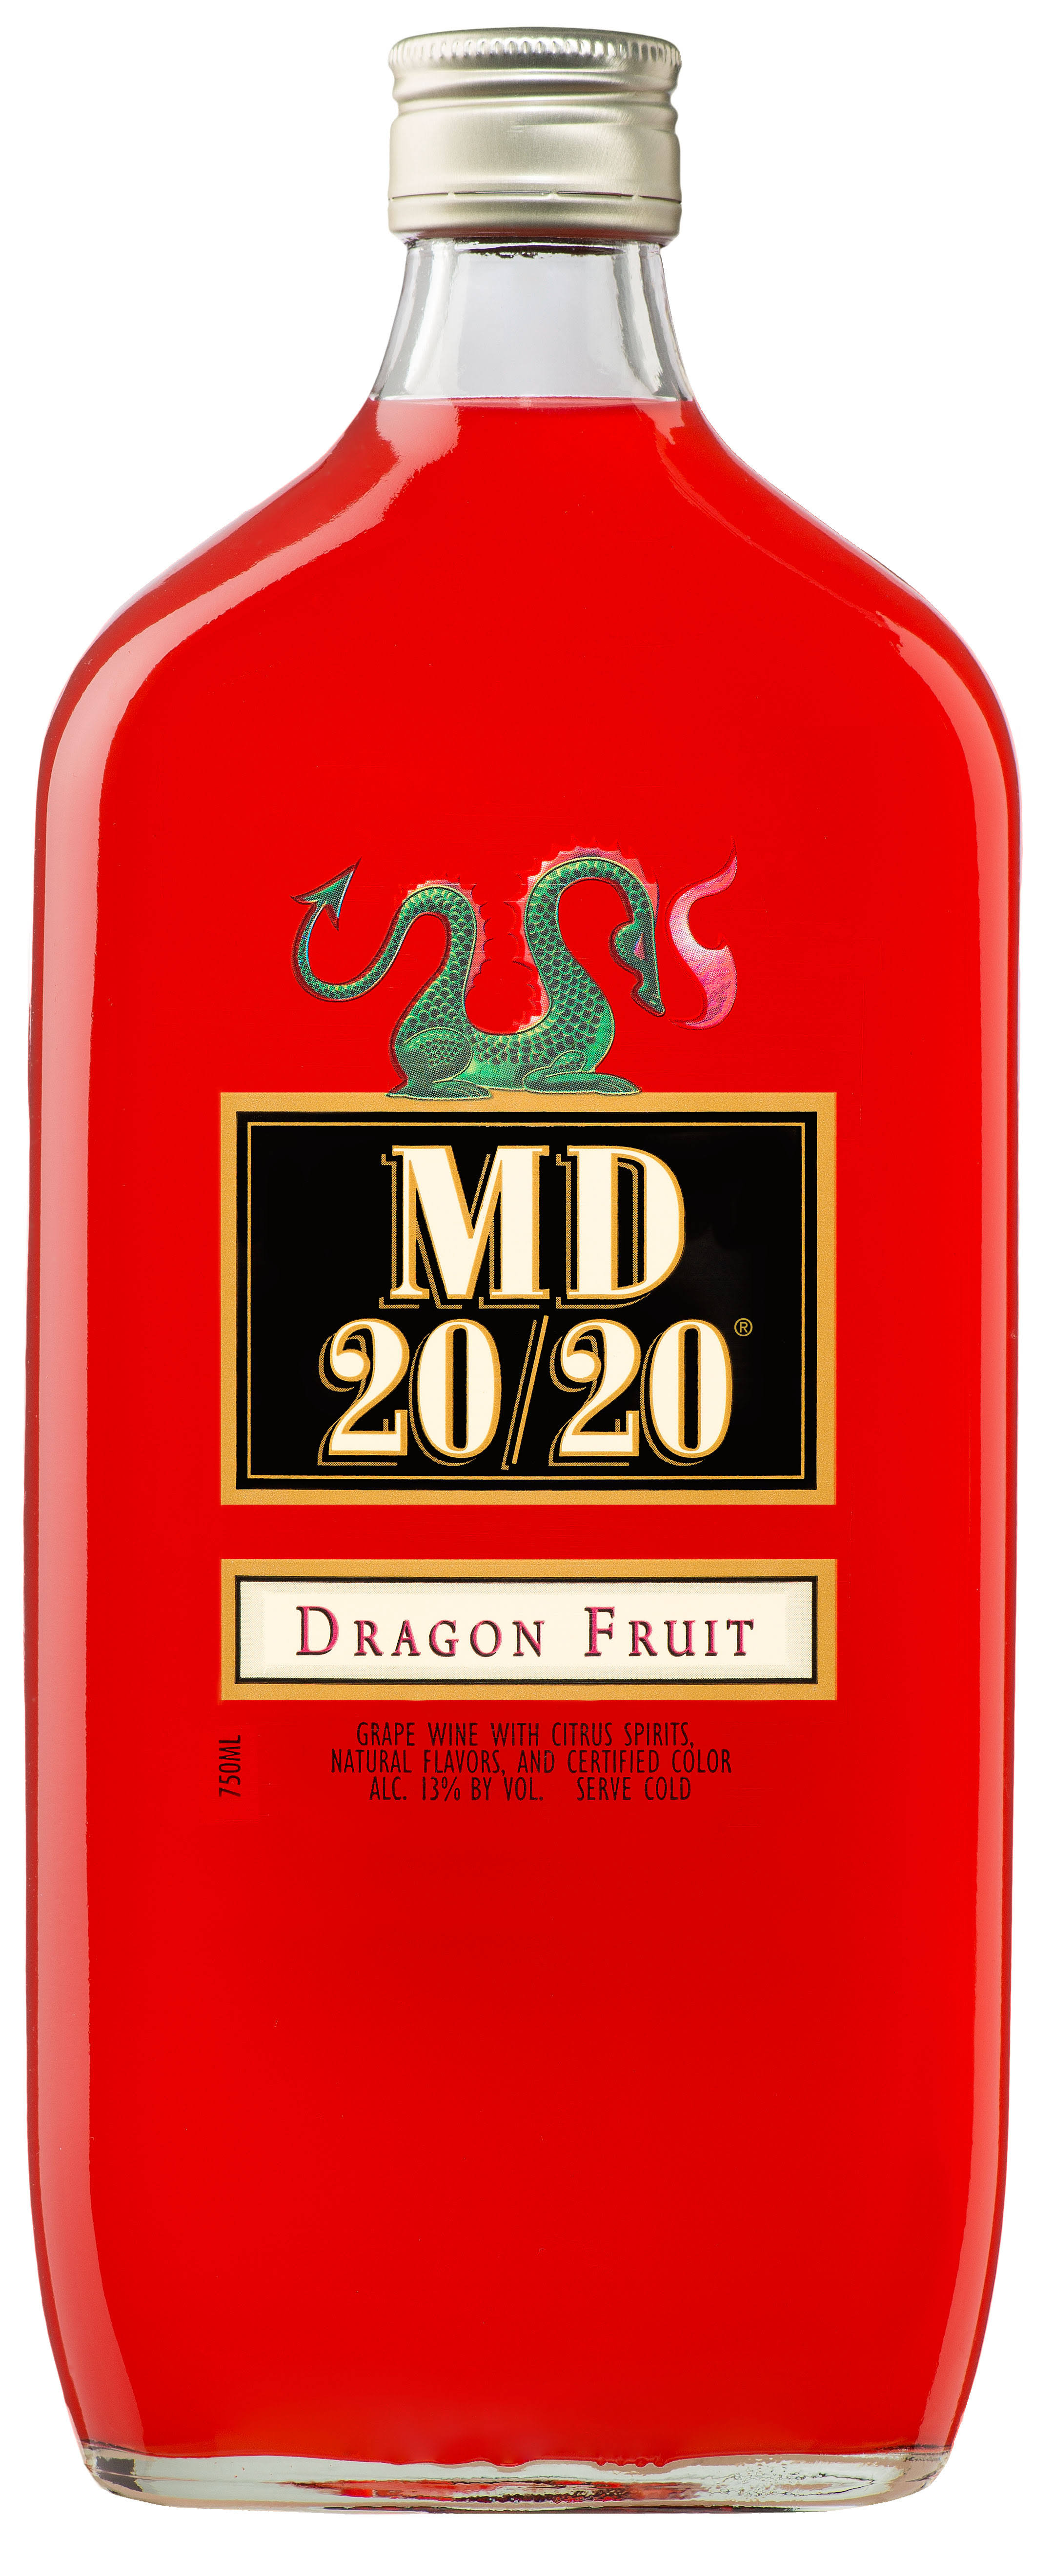 MD 20/20 Dragon Fruit Flavored Wine - 750ml